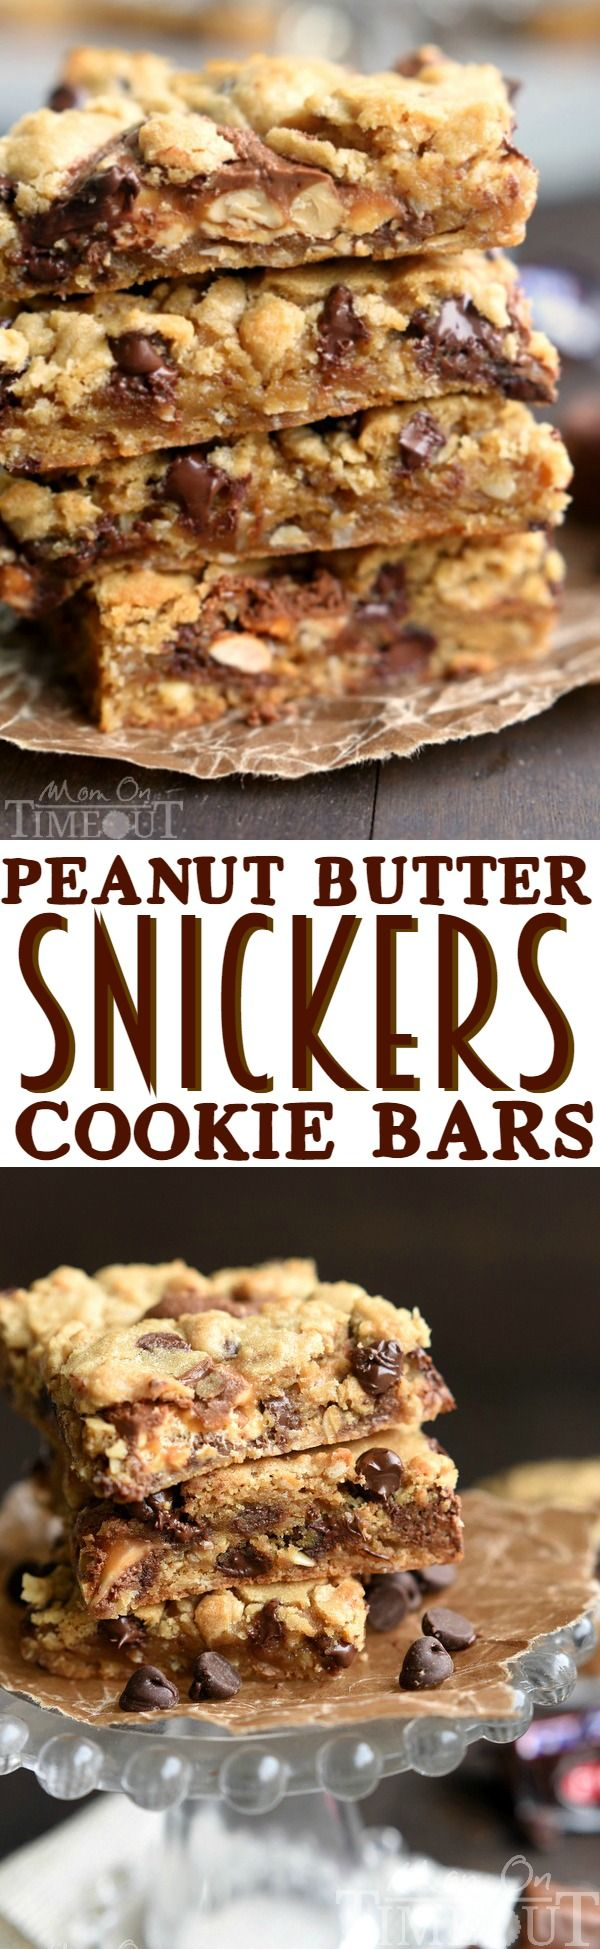 For PEANUT BUTTER LOVERS only! Gooey, decadent Peanut Butter Snickers Cookie Bars have loads of peanut butter flavor in every bite!